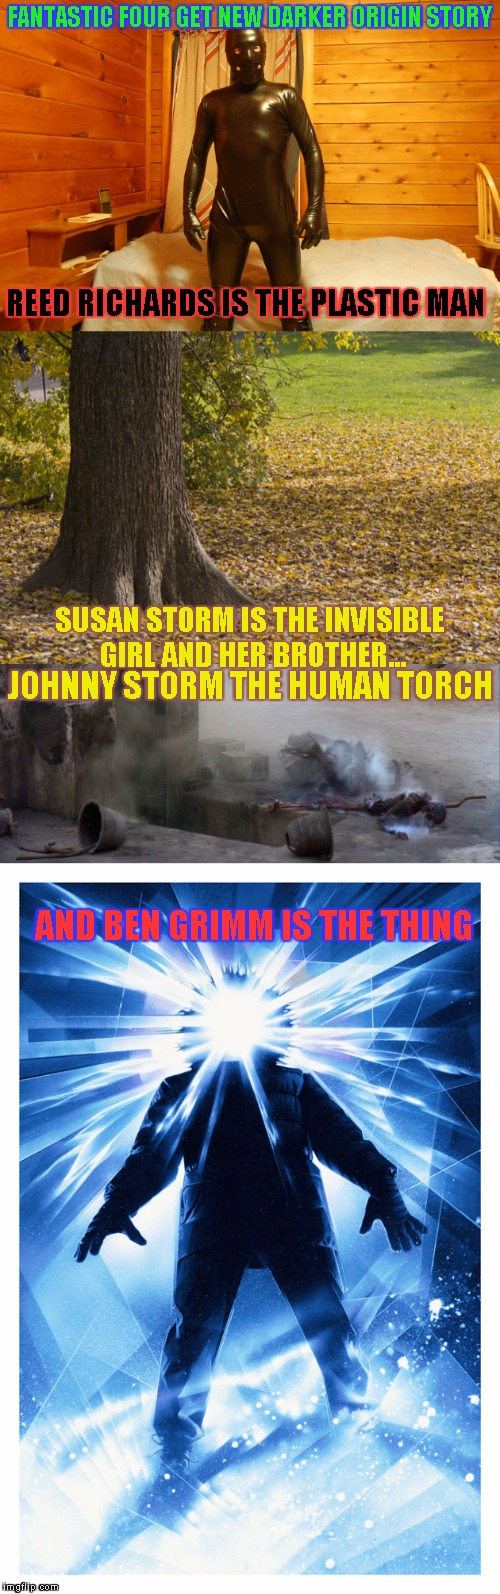 Kicking Superhero Week off early | FANTASTIC FOUR GET NEW DARKER ORIGIN STORY JOHNNY STORM THE HUMAN TORCH REED RICHARDS IS THE PLASTIC MAN SUSAN STORM IS THE INVISIBLE GIRL A | image tagged in fantastic four,superhero week | made w/ Imgflip meme maker